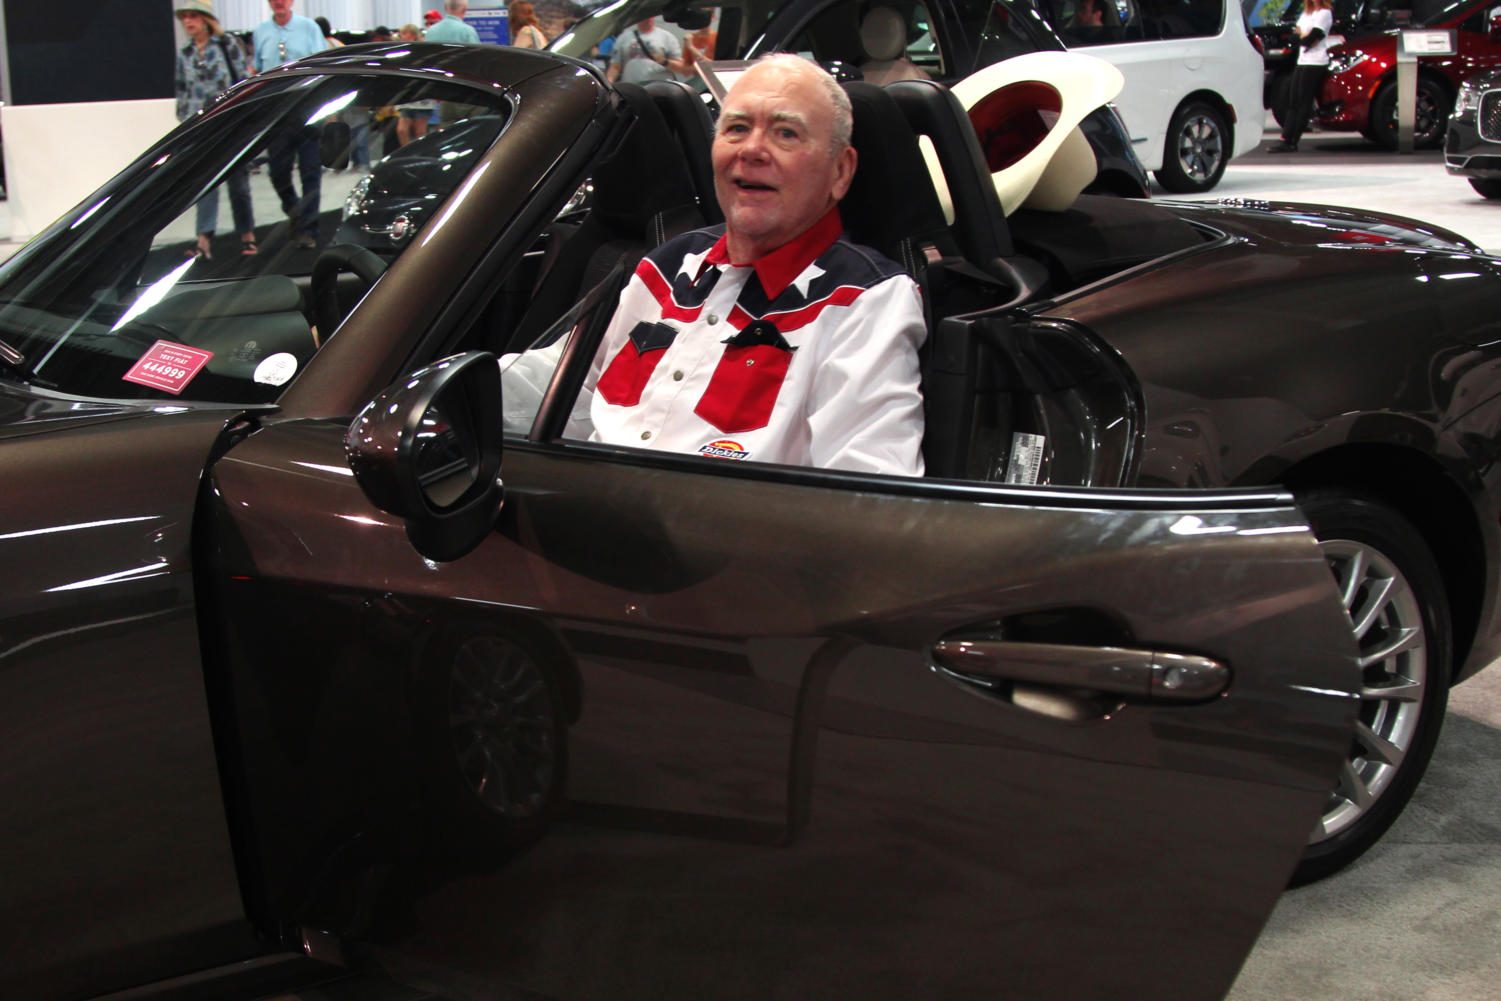 Attendee+takes+the+wheel+in+the+2019+Fiat+12+Spider.